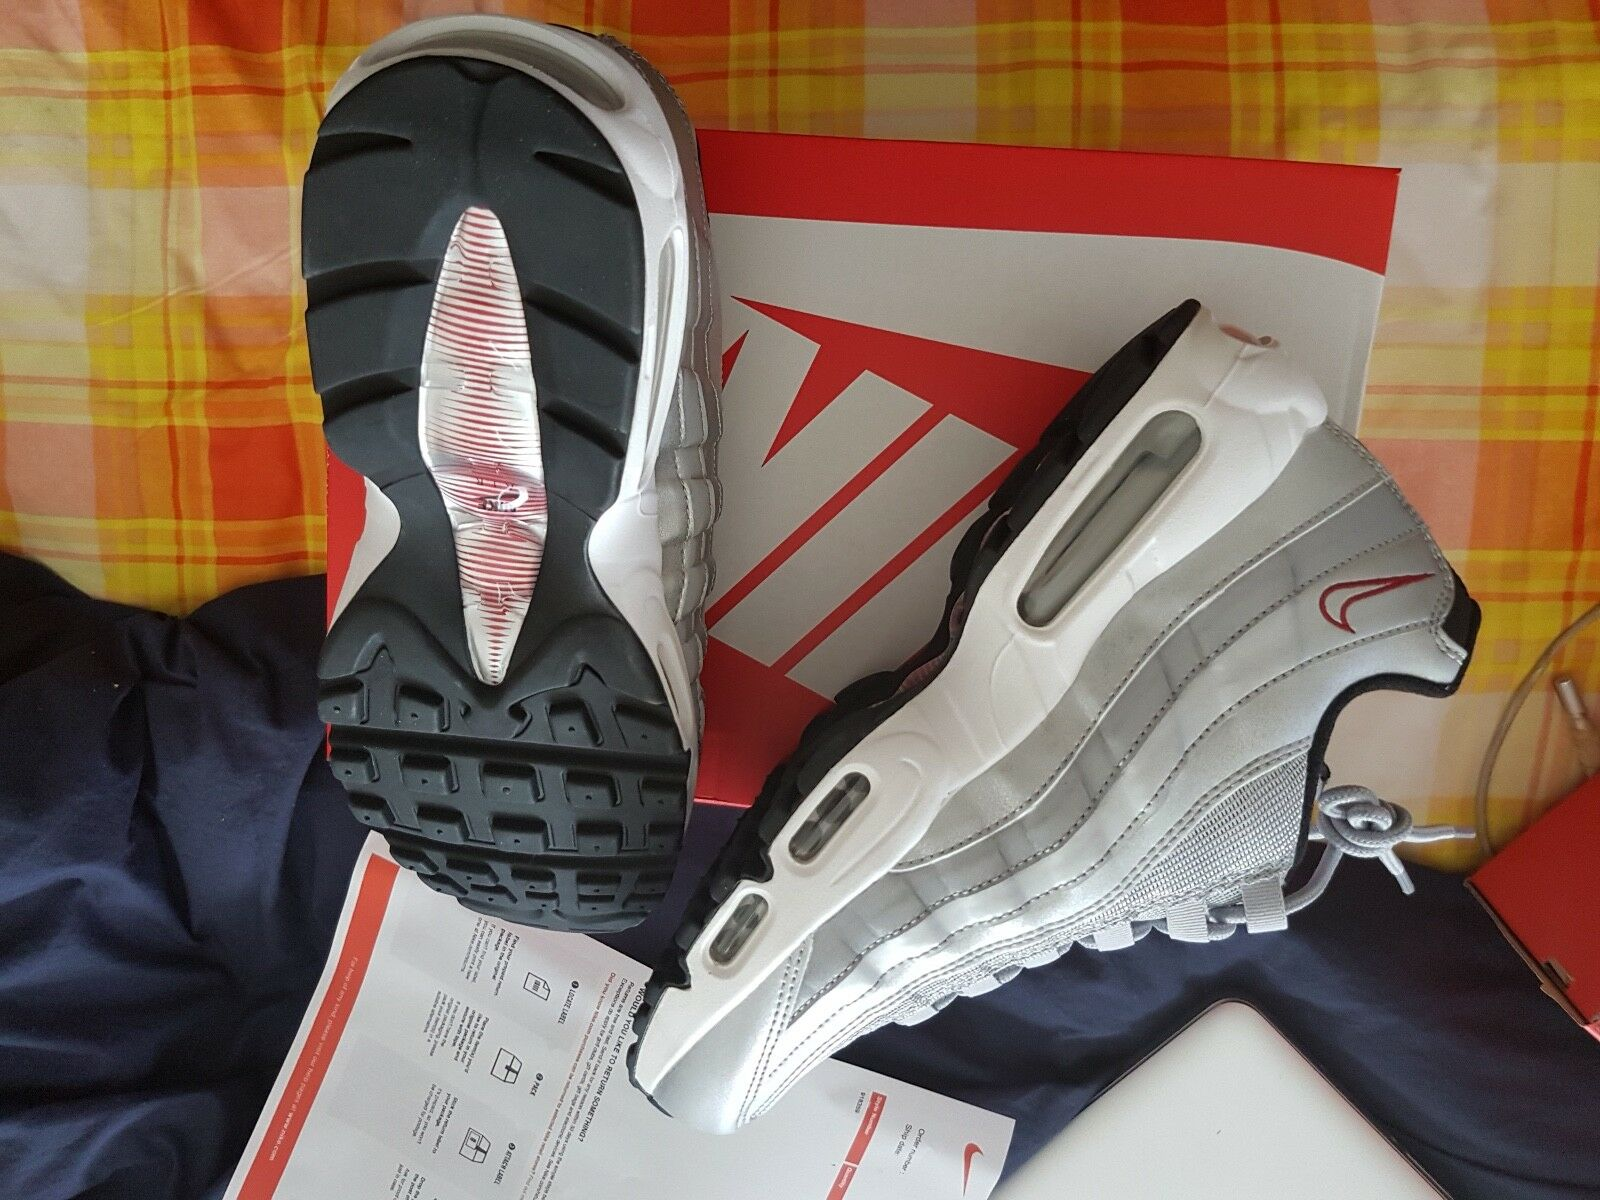 newest 2fed7 3e15d Nike Air Max 95 Silver Bullet UK 8.5 110108. US8 UK7 EUR41  US8.5 UK7.5 EUR42 US9.5 UK8.5 EUR43 US10 UK9 EUR44 US11 UK10 EUR45  US12 UK11 EUR46 ...